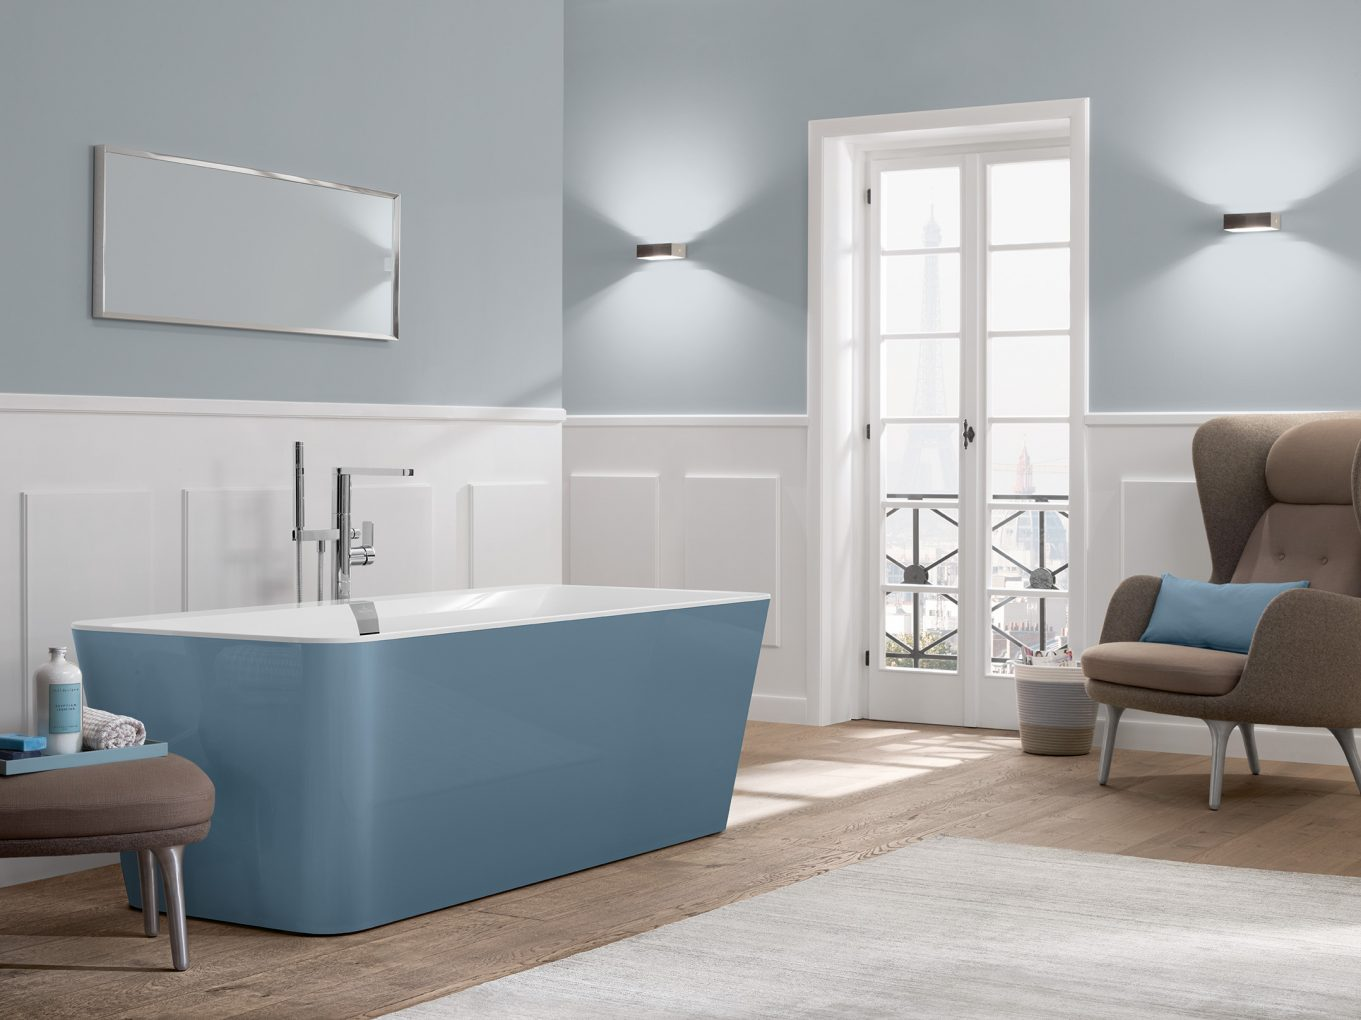 artis collection of mosbuild best bathroom exhibitors mosbuild best bathroom exhibitors MOSBUILD 2019 BEST BATHROOM EXHIBITORS artis2